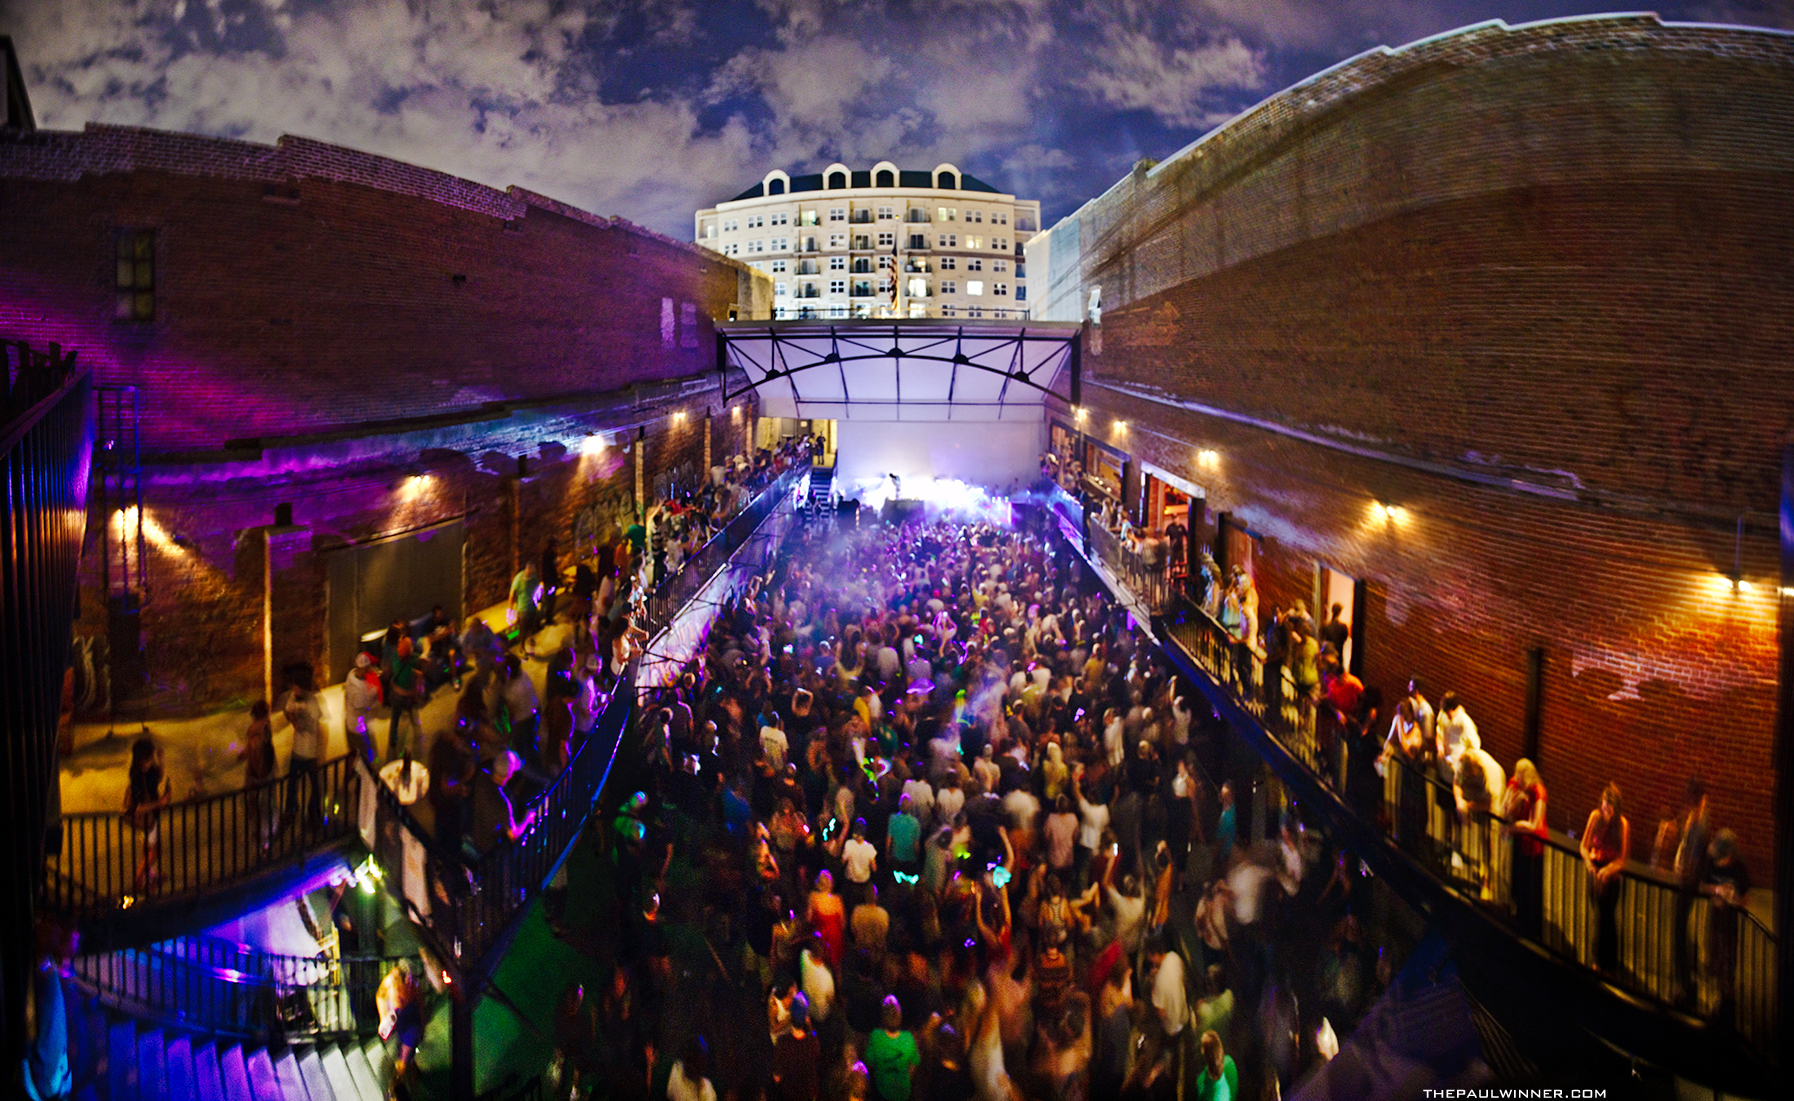 Denver's premiere event space for concerts, shows, expos, weddings and corporate events. Multi-room venue including an amphitheater with a retractable roof | The Official Nightlife Headquarters of Den